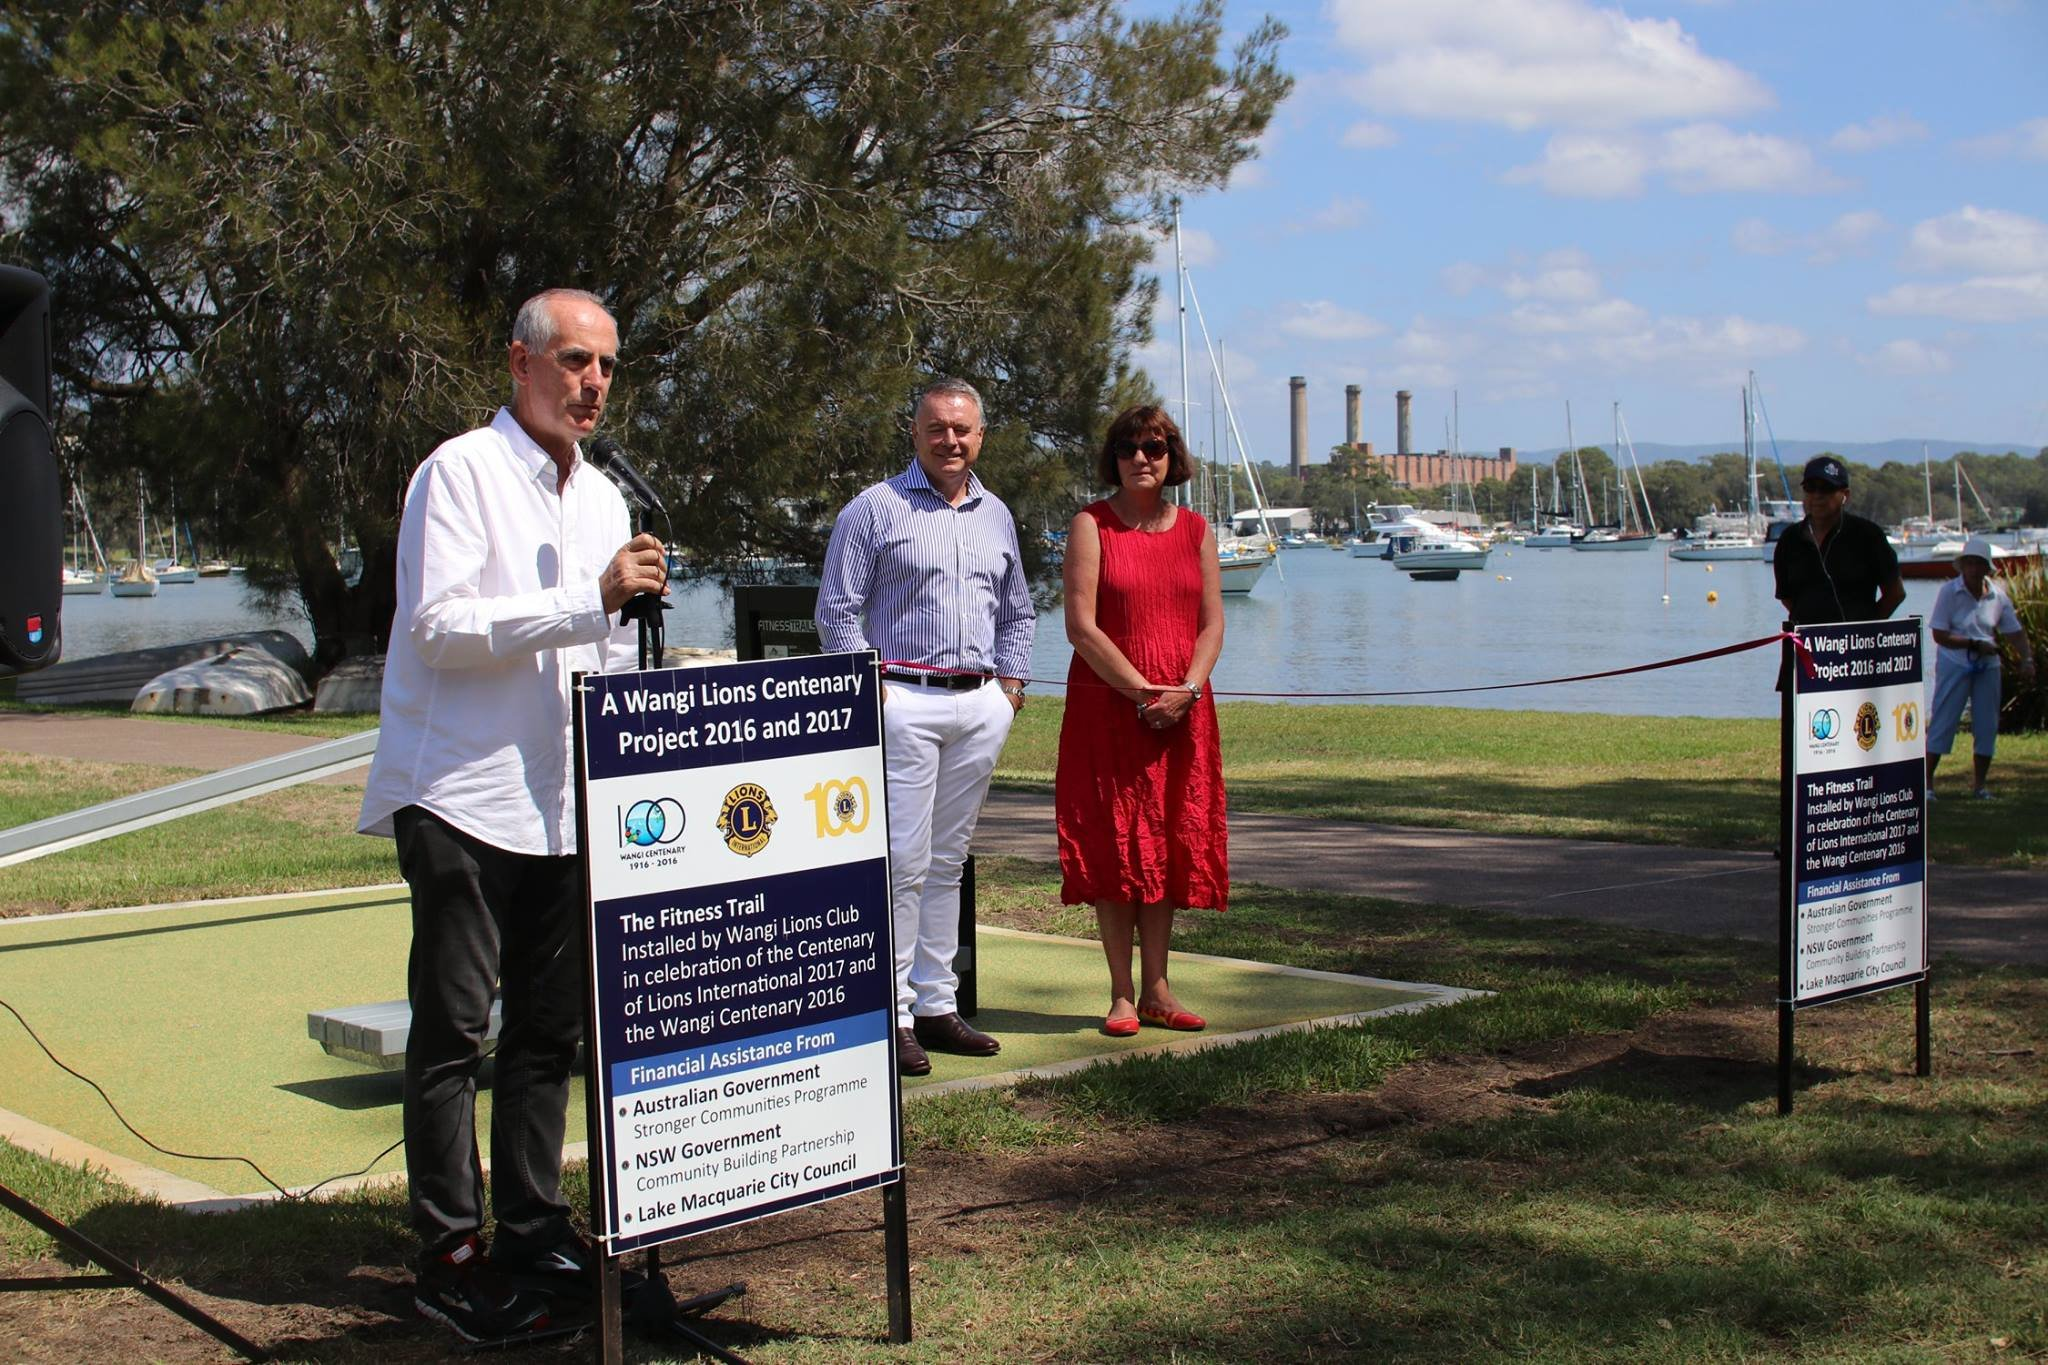 I had a great time joining with Mayor Kay Fraser, Member for Hunter, Joel Fitzgibbon, members of the Wangi Lions Club and members of the local community to officially open the Wangi Fitness Trail which runs along the beautiful foreshore of Wangi